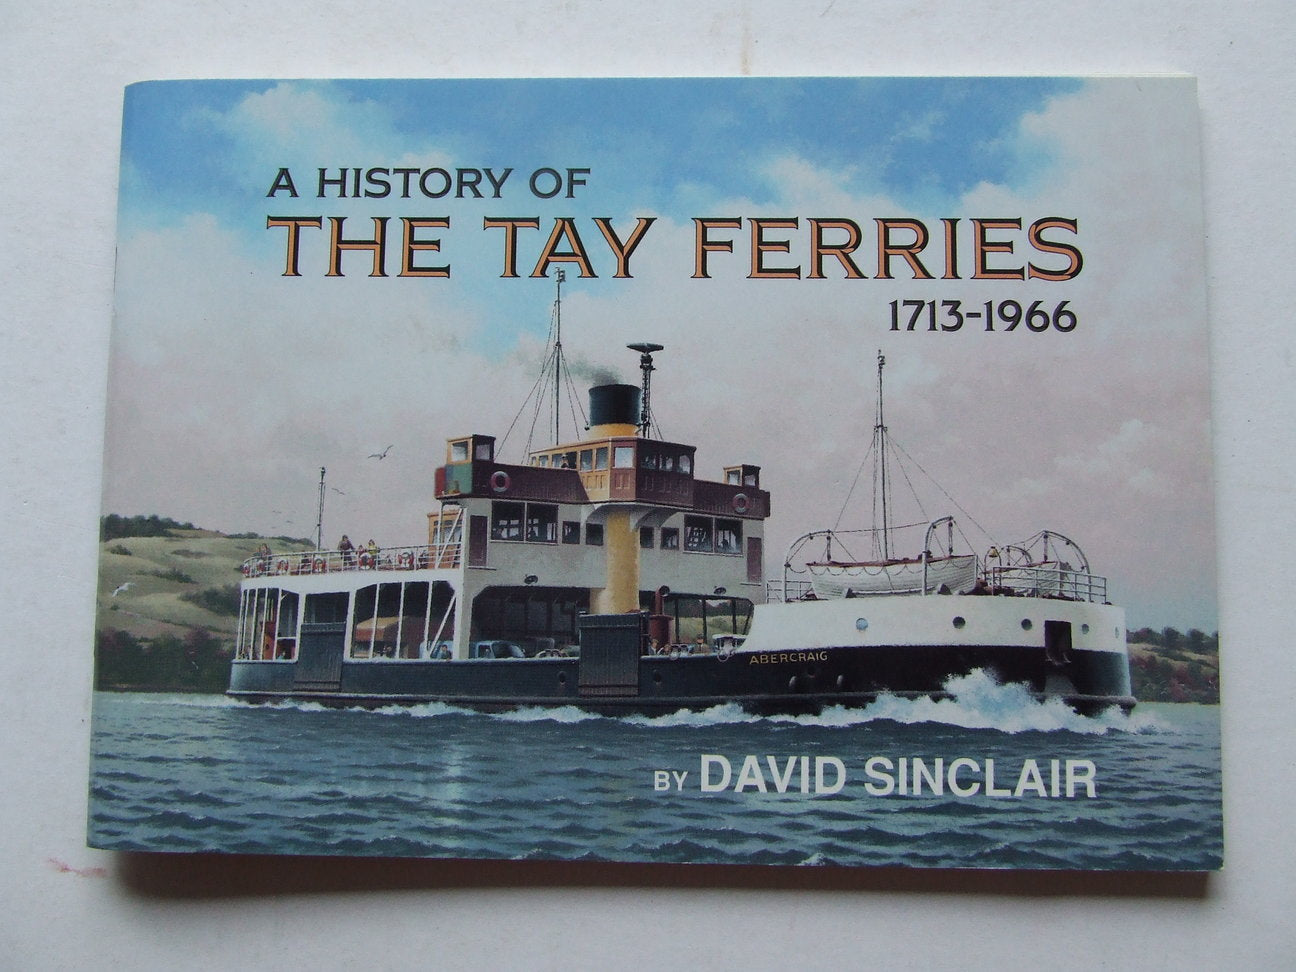 History of the Tay Ferries 1713-1966